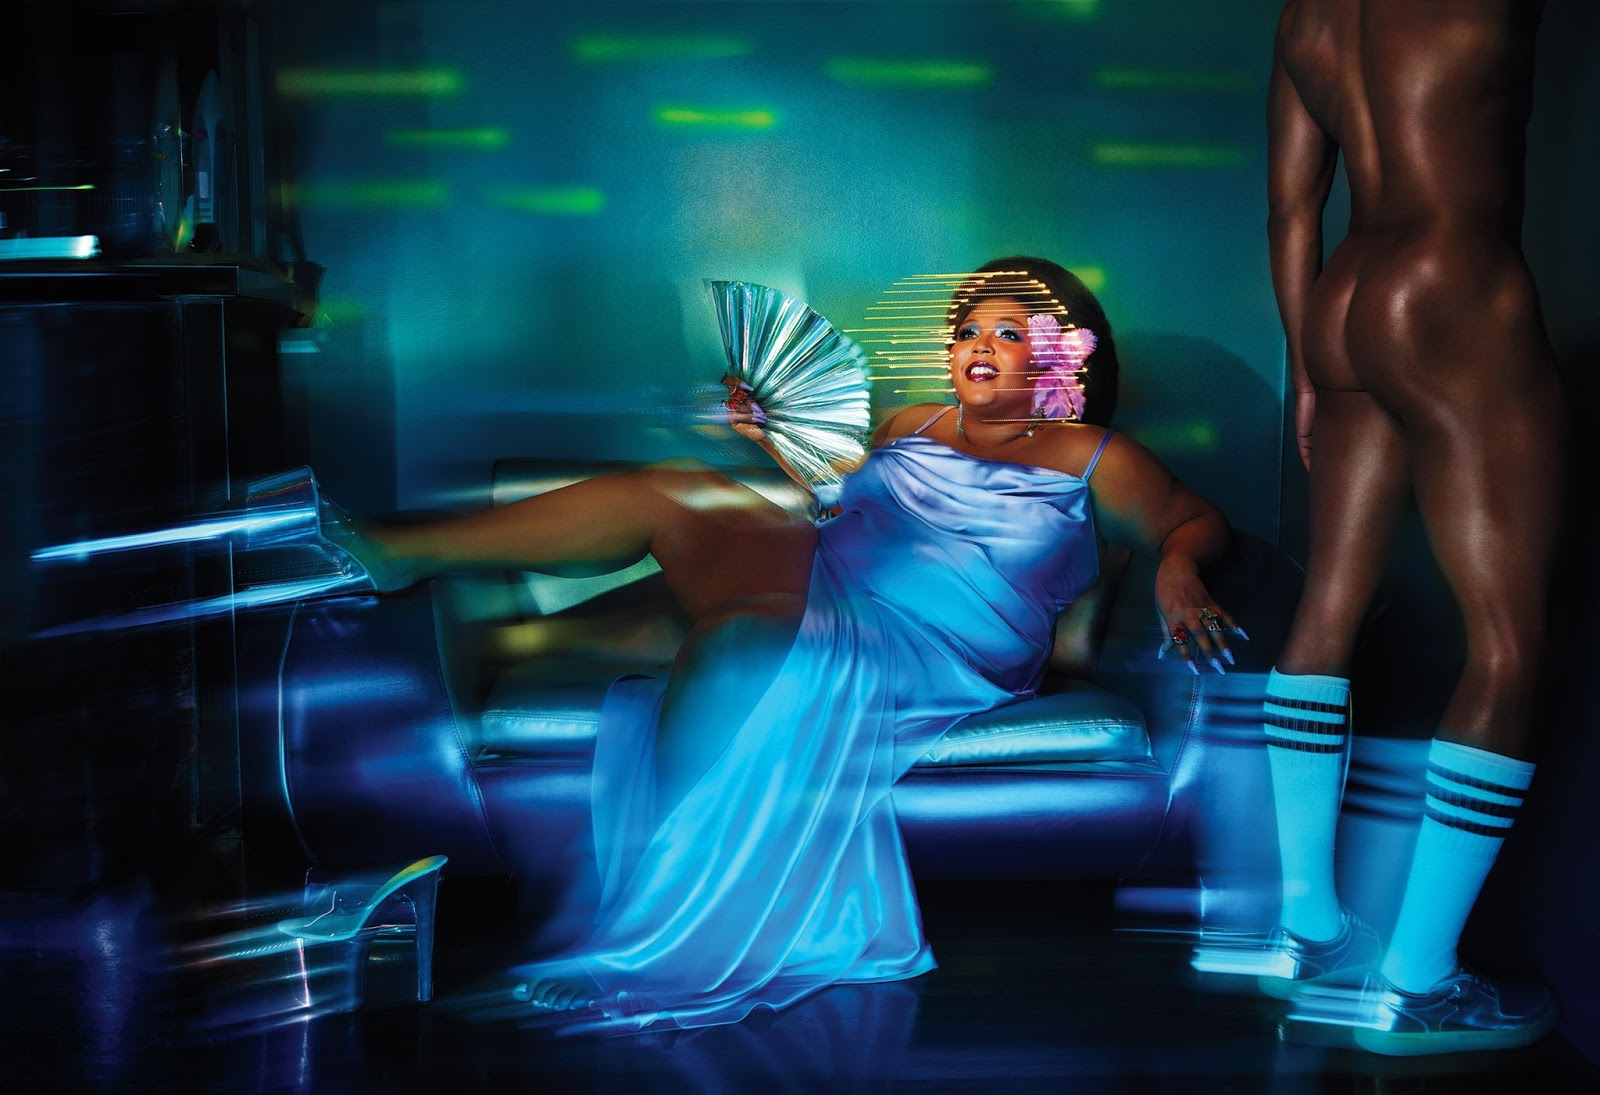 Lizzo for ROLLING STONE, photographed by David LaChapelle